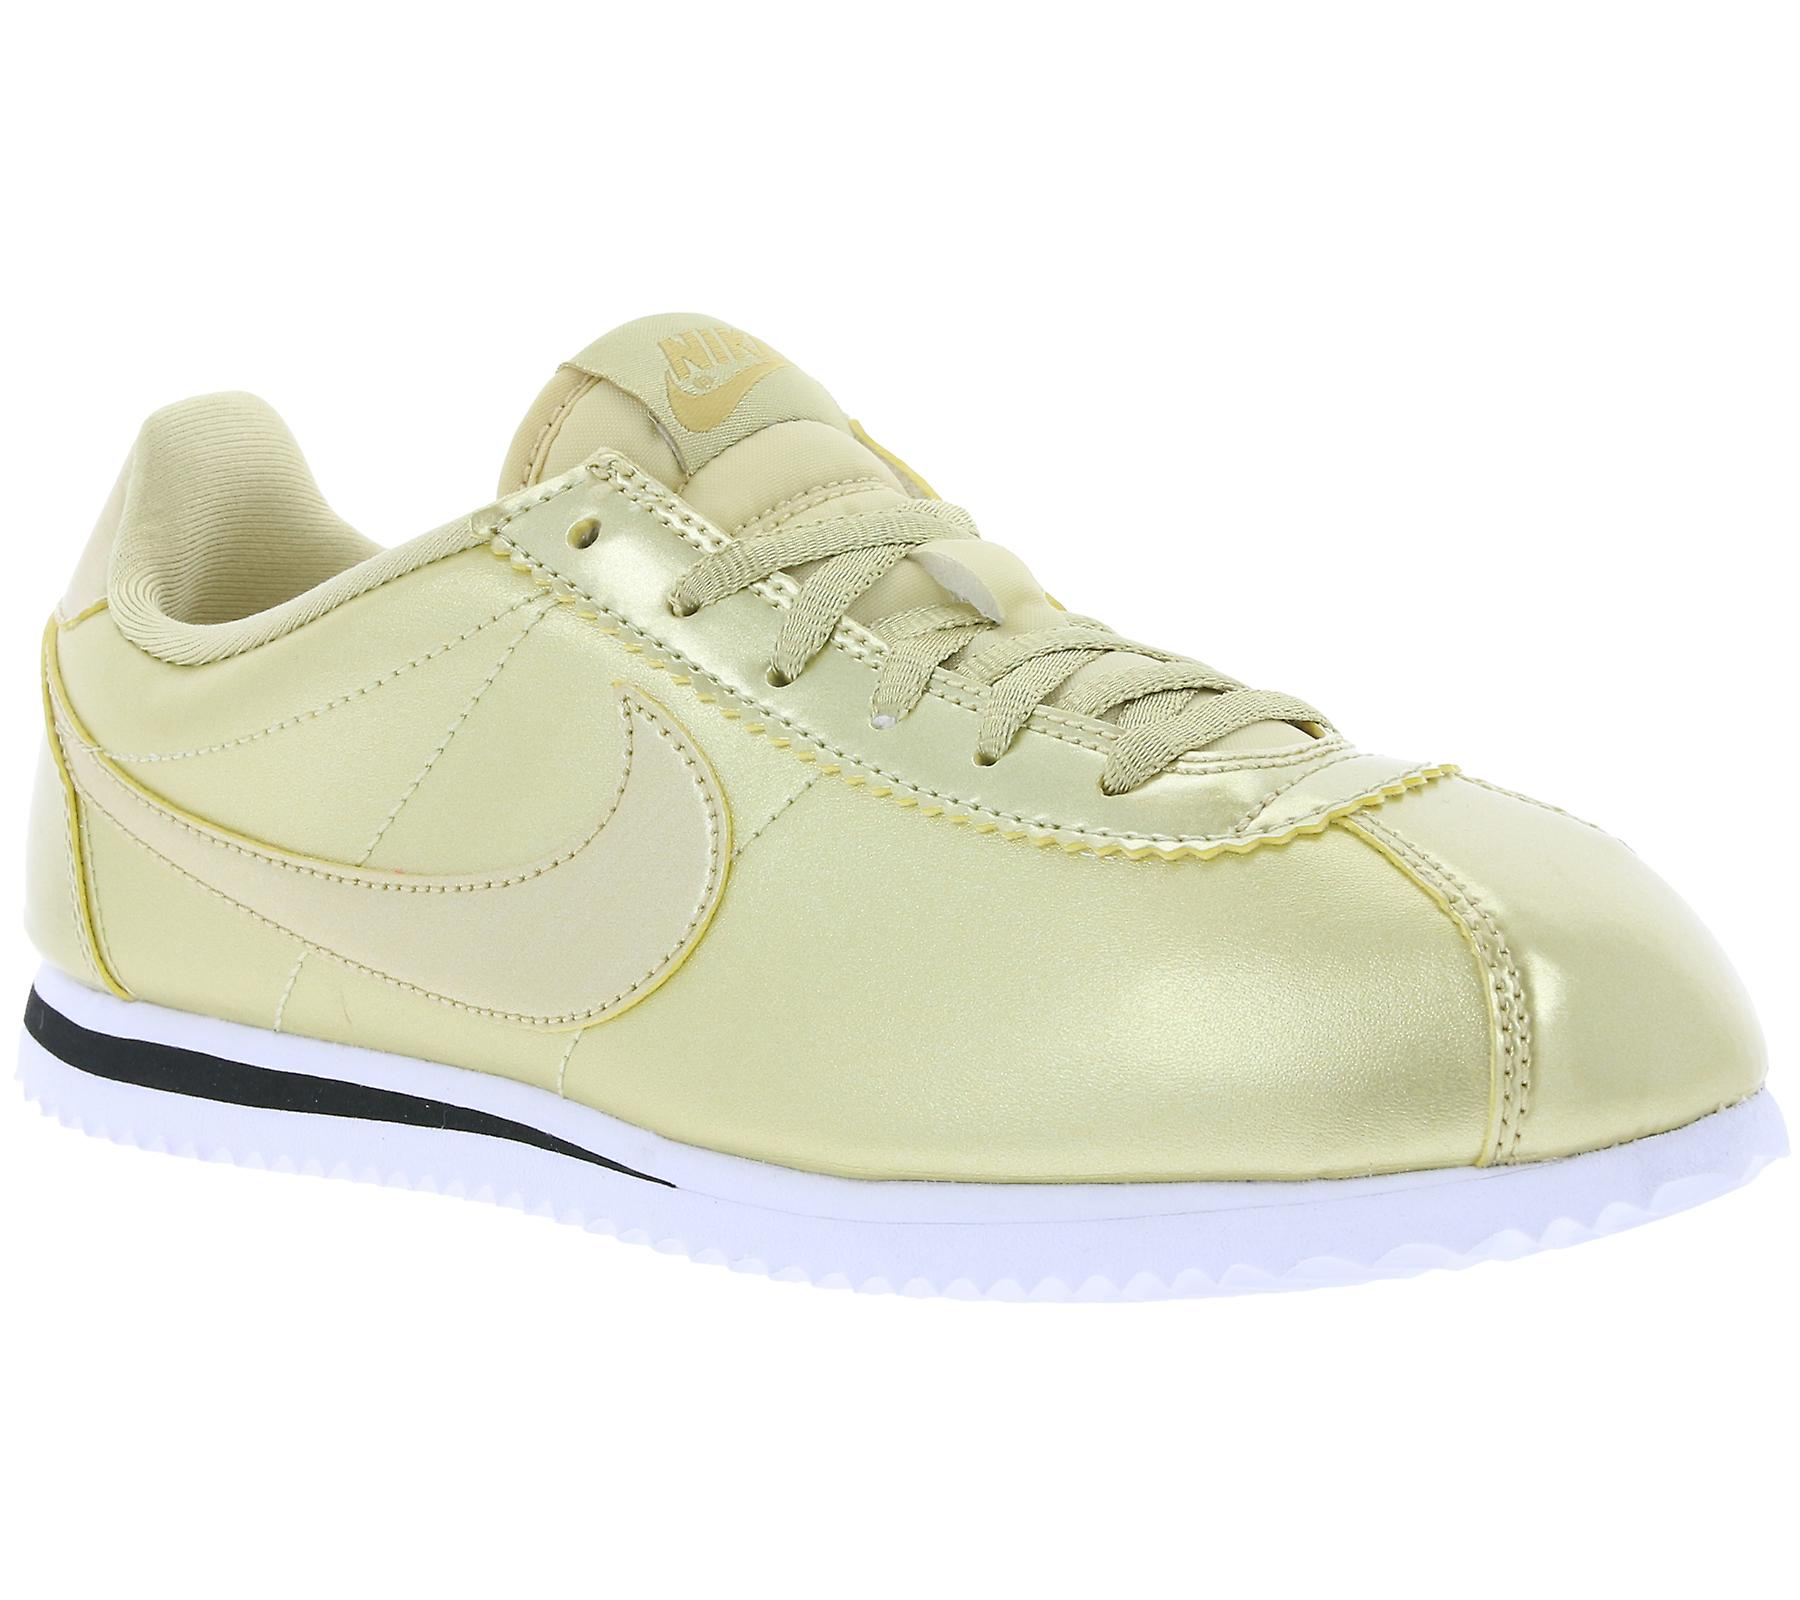 new concept 2ef68 3c542 NIKE Cortez Special Edition GS barn sneaker guld 859569 900